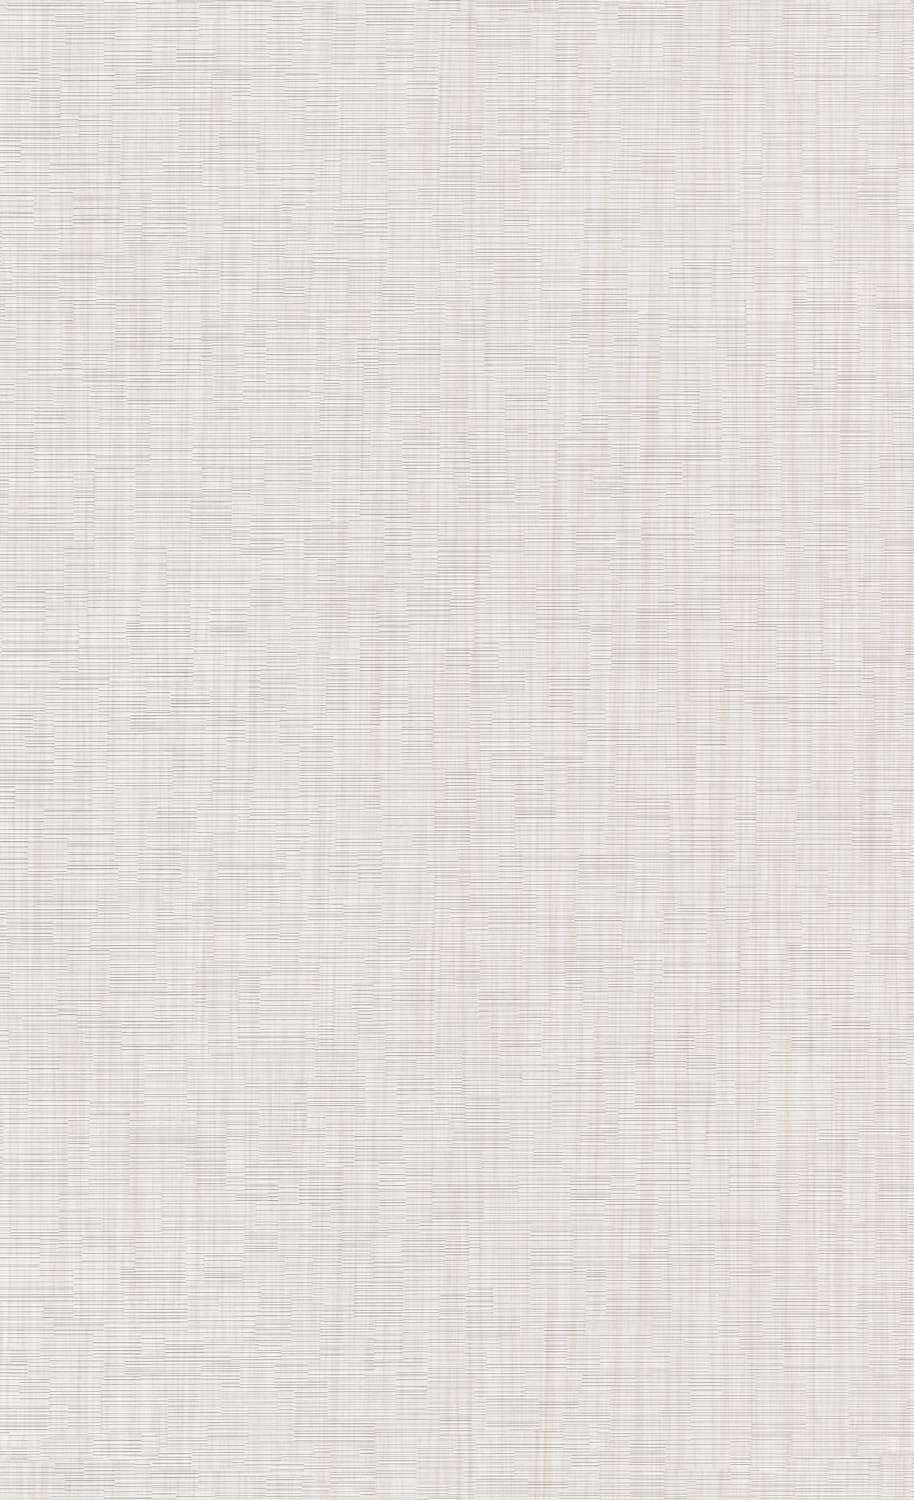 Silver Rustic Wallpaper C7295  | Vinyl Contract Wallcovering